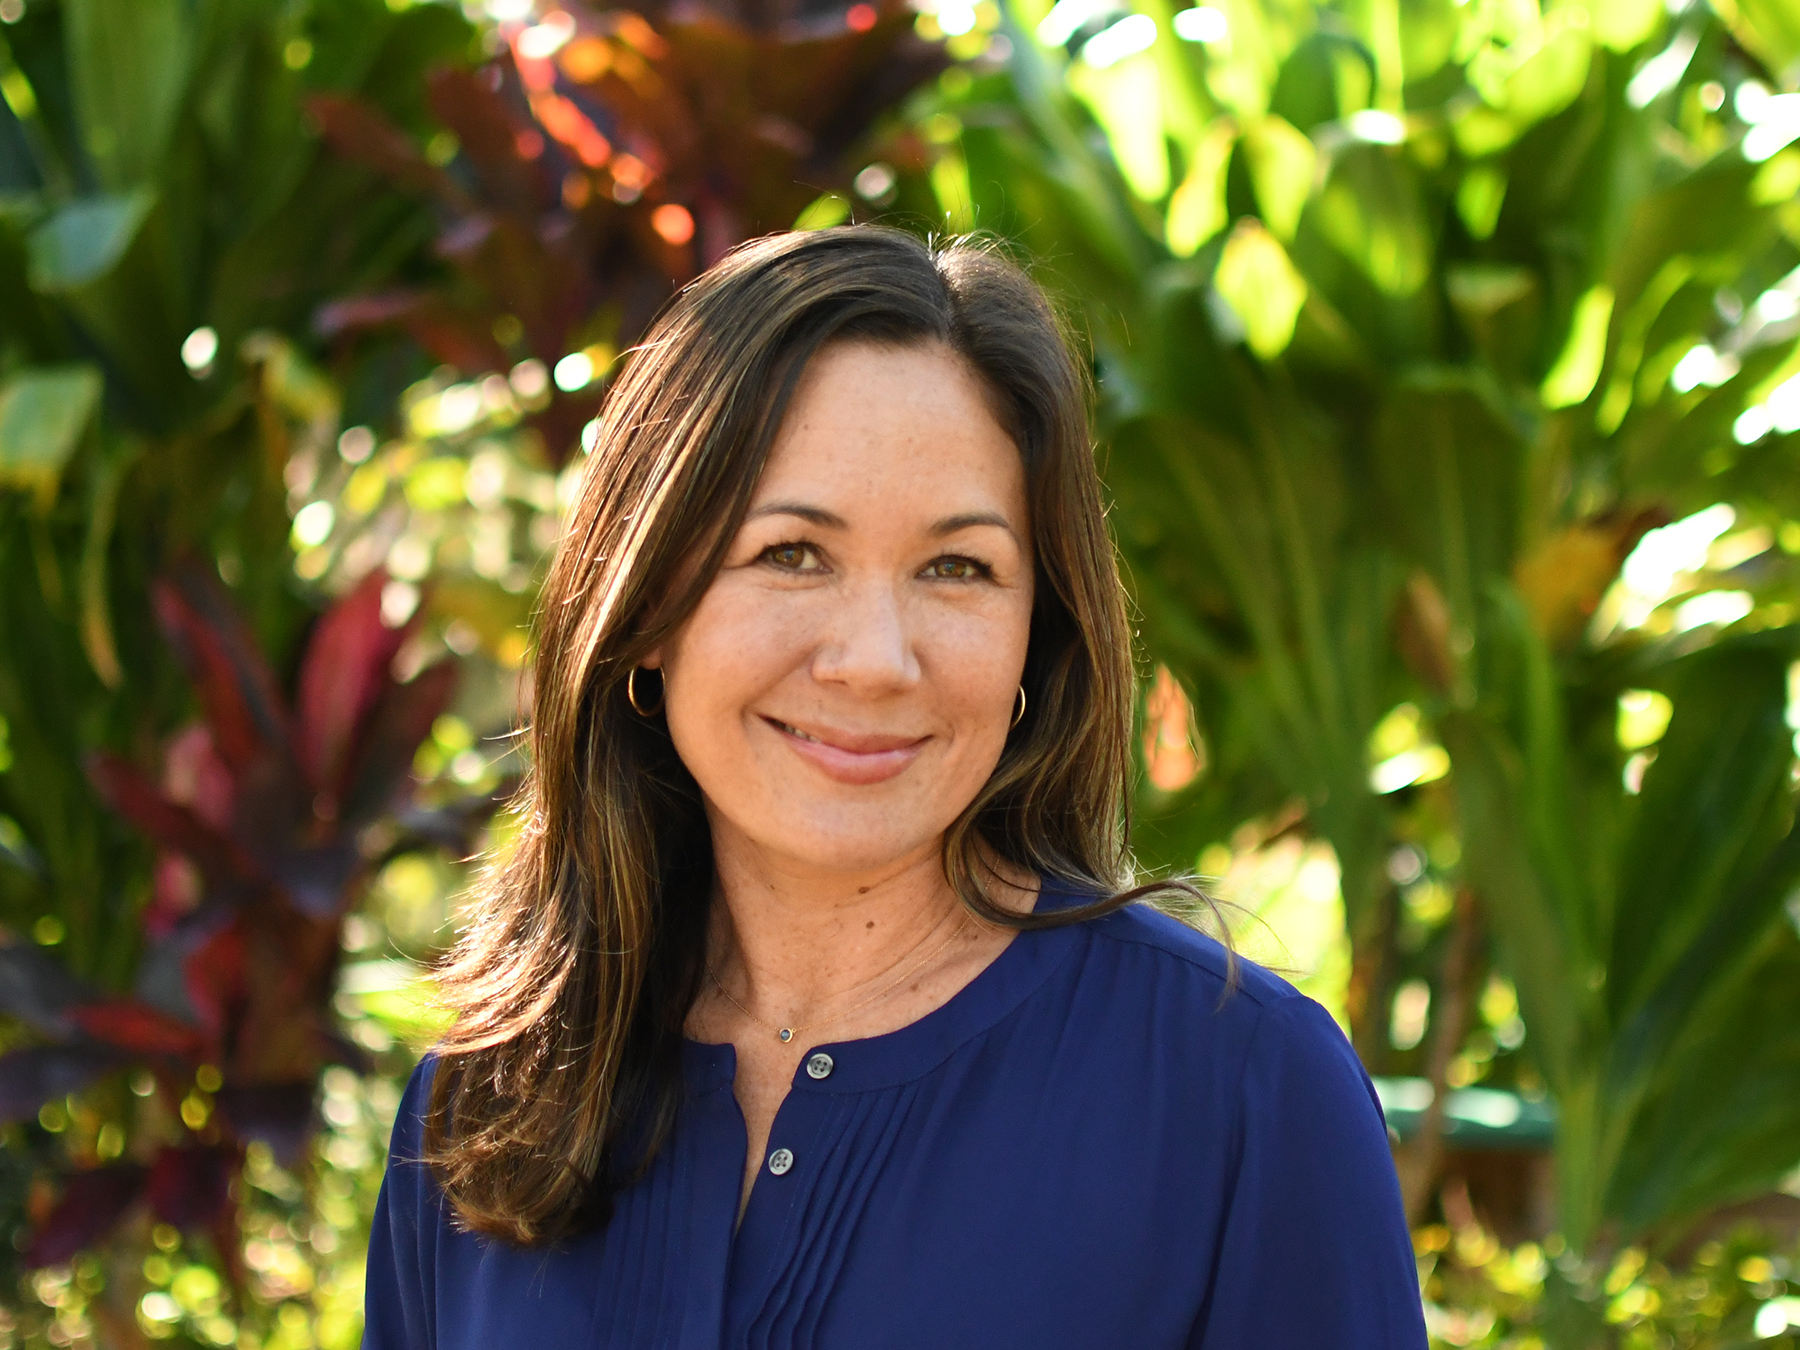 Kandice Johns Joins The Maui Farm as Executive Director